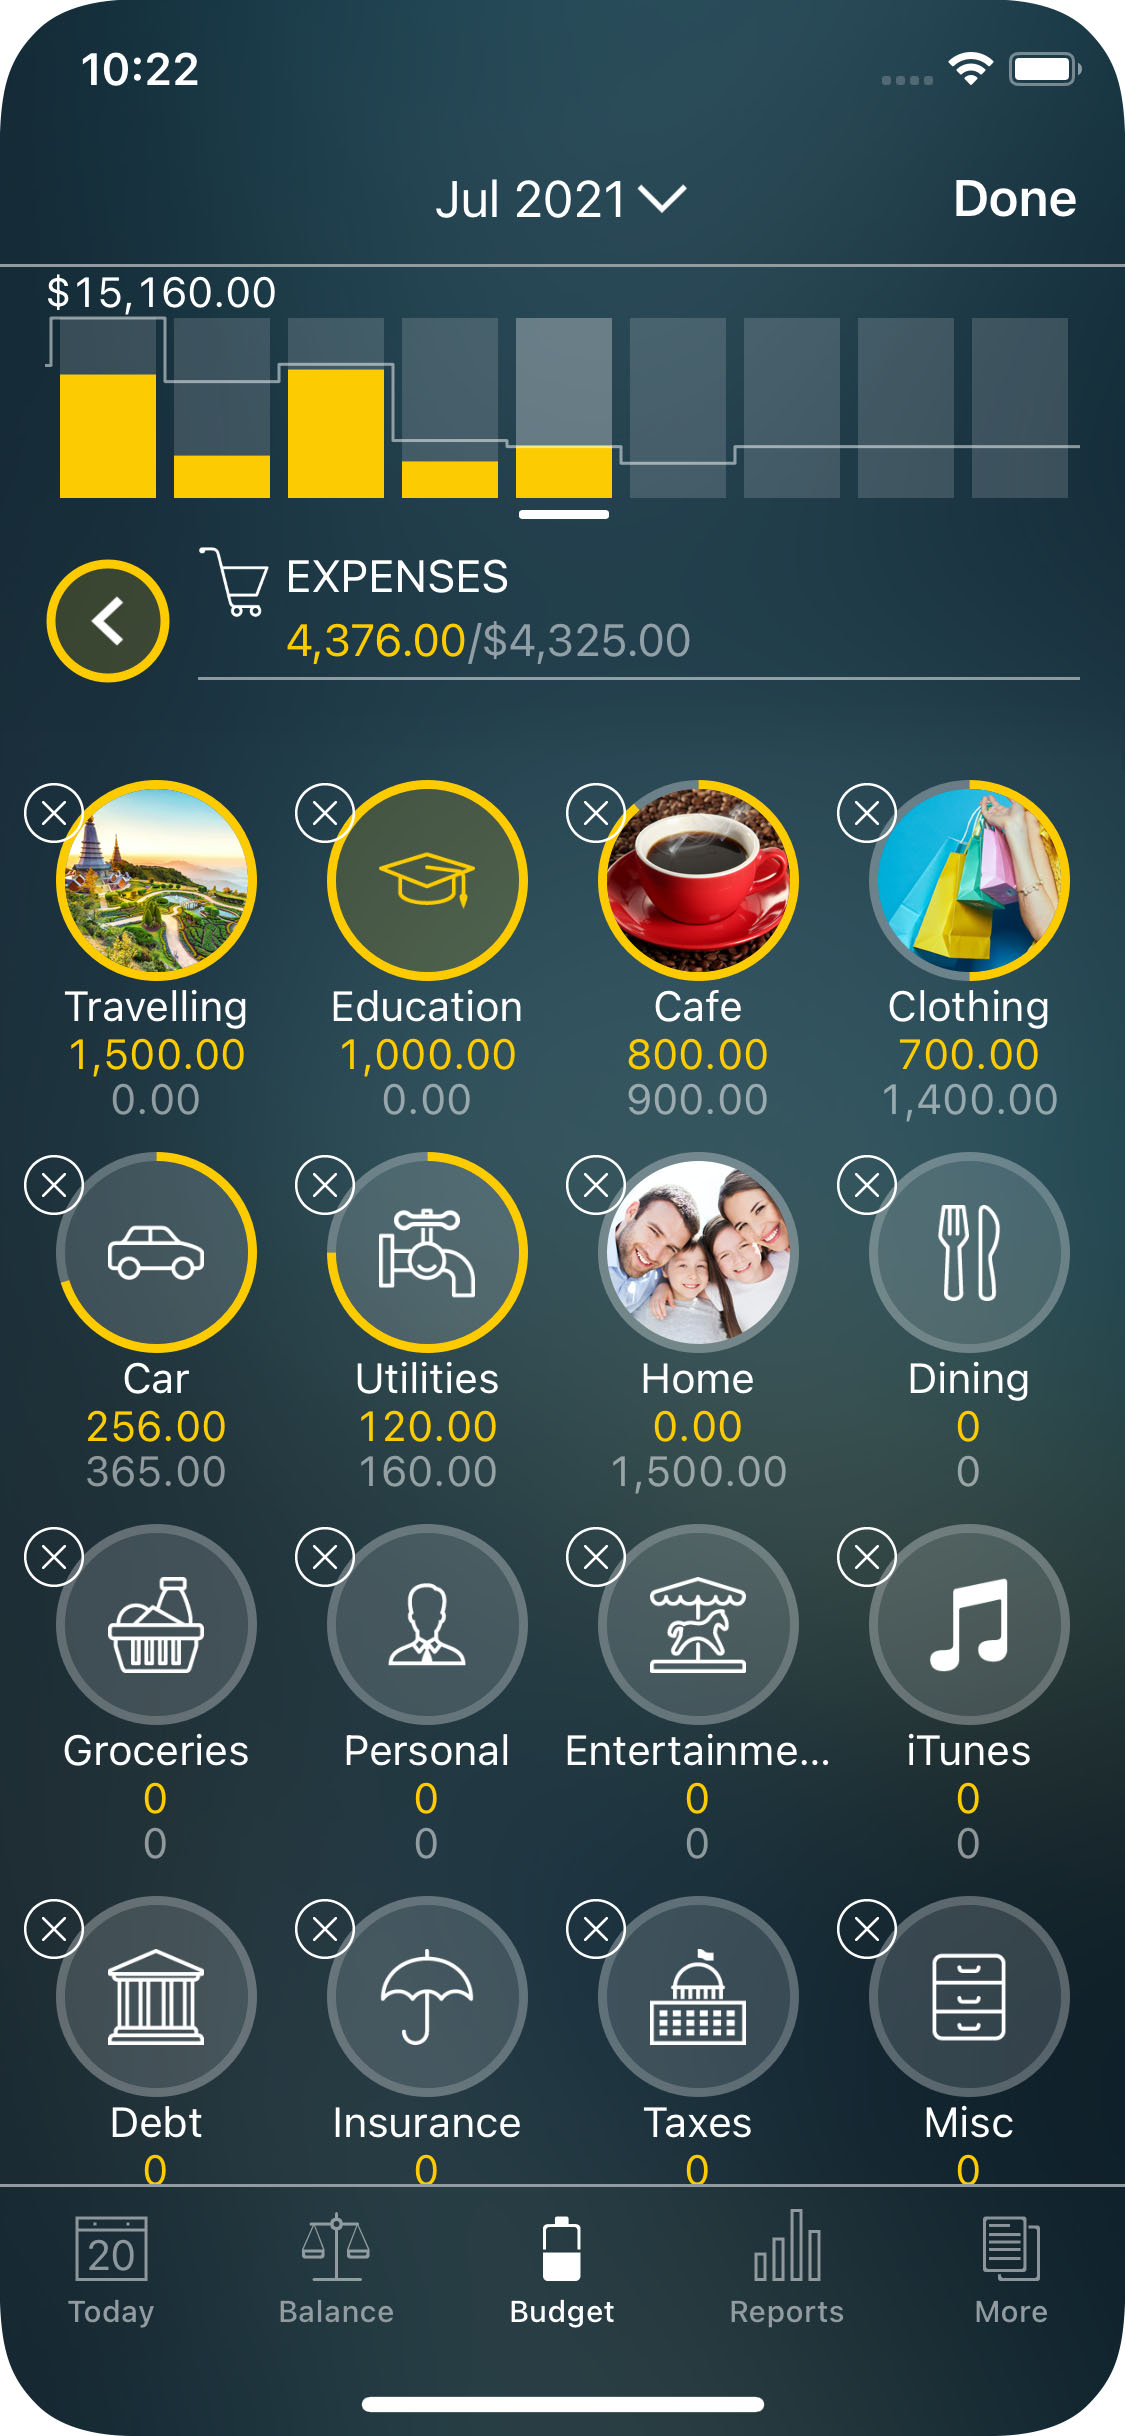 Money Pro for iPhone - Budget - Expenses